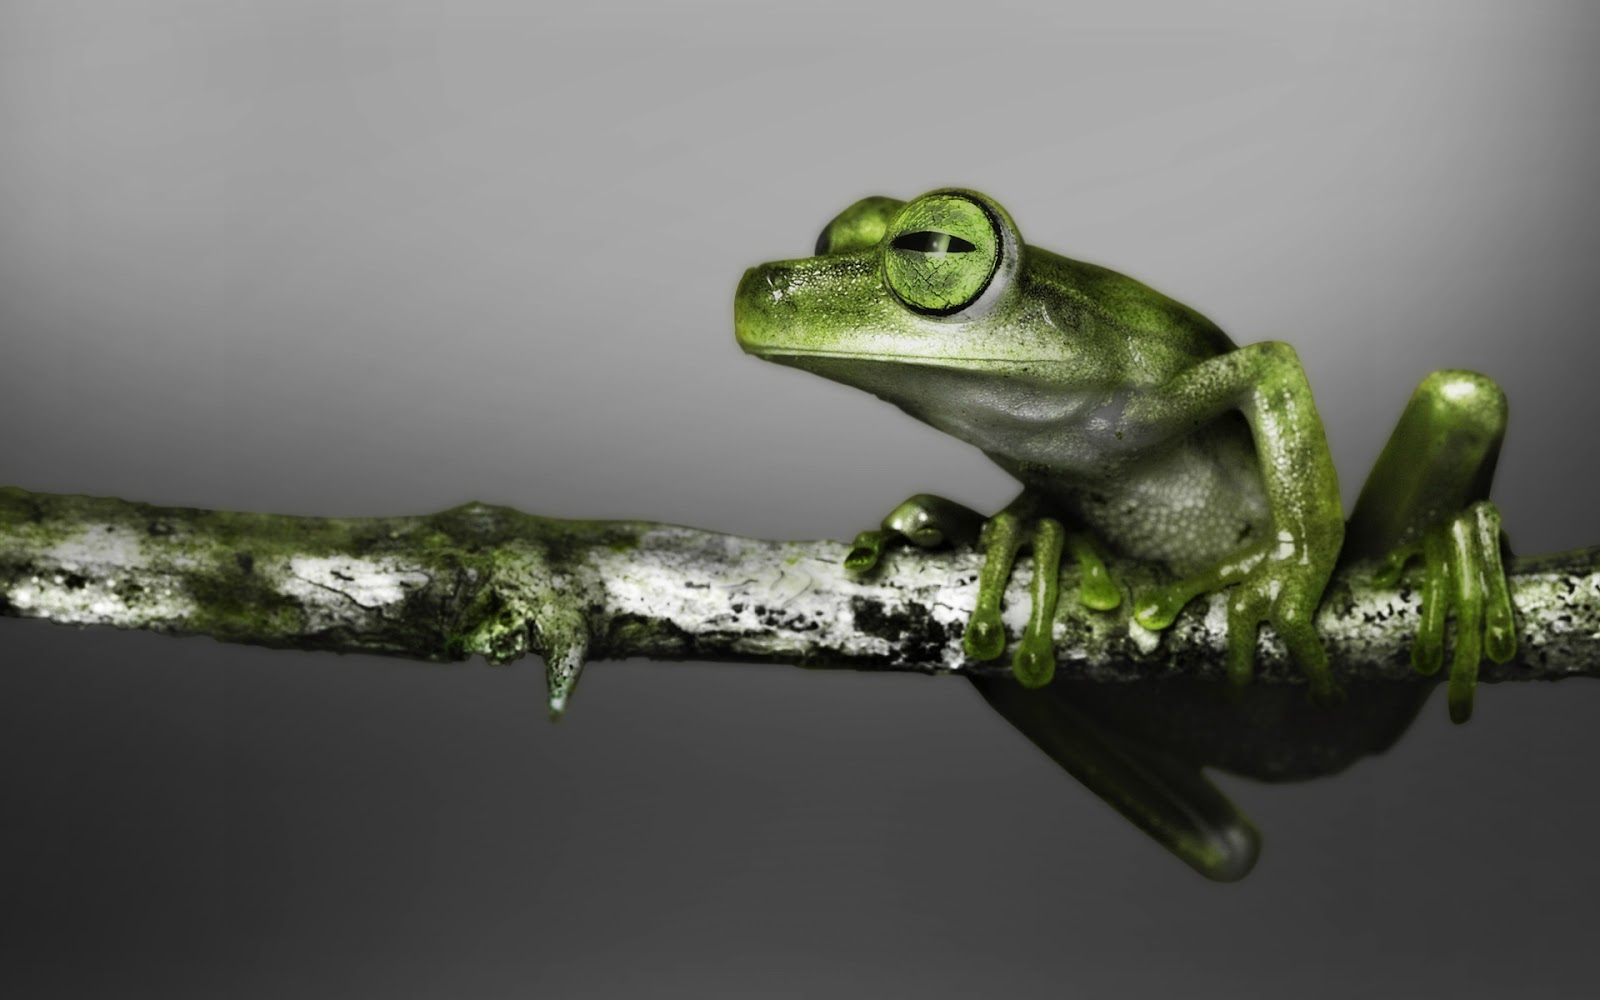 Frog Wallpapers | Fun Animals Wiki, Videos, Pictures, Stories